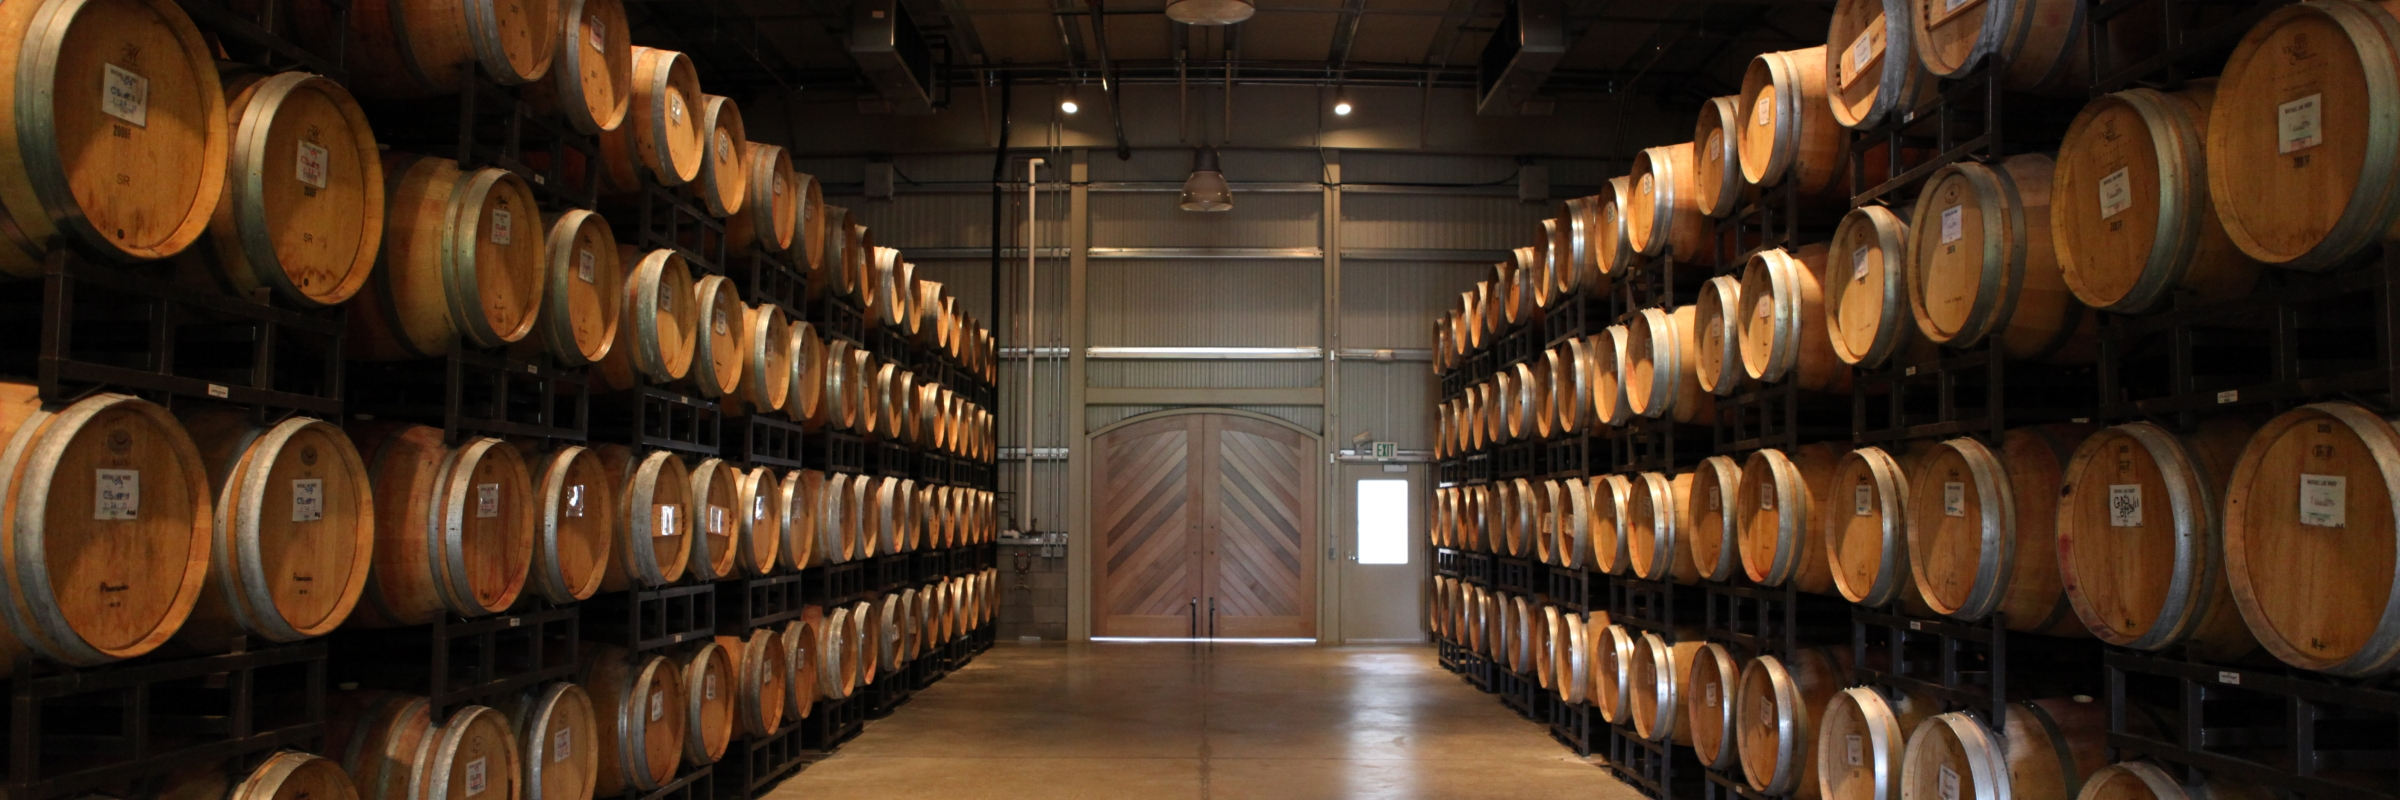 Alternative Investments, Wine And Whisky